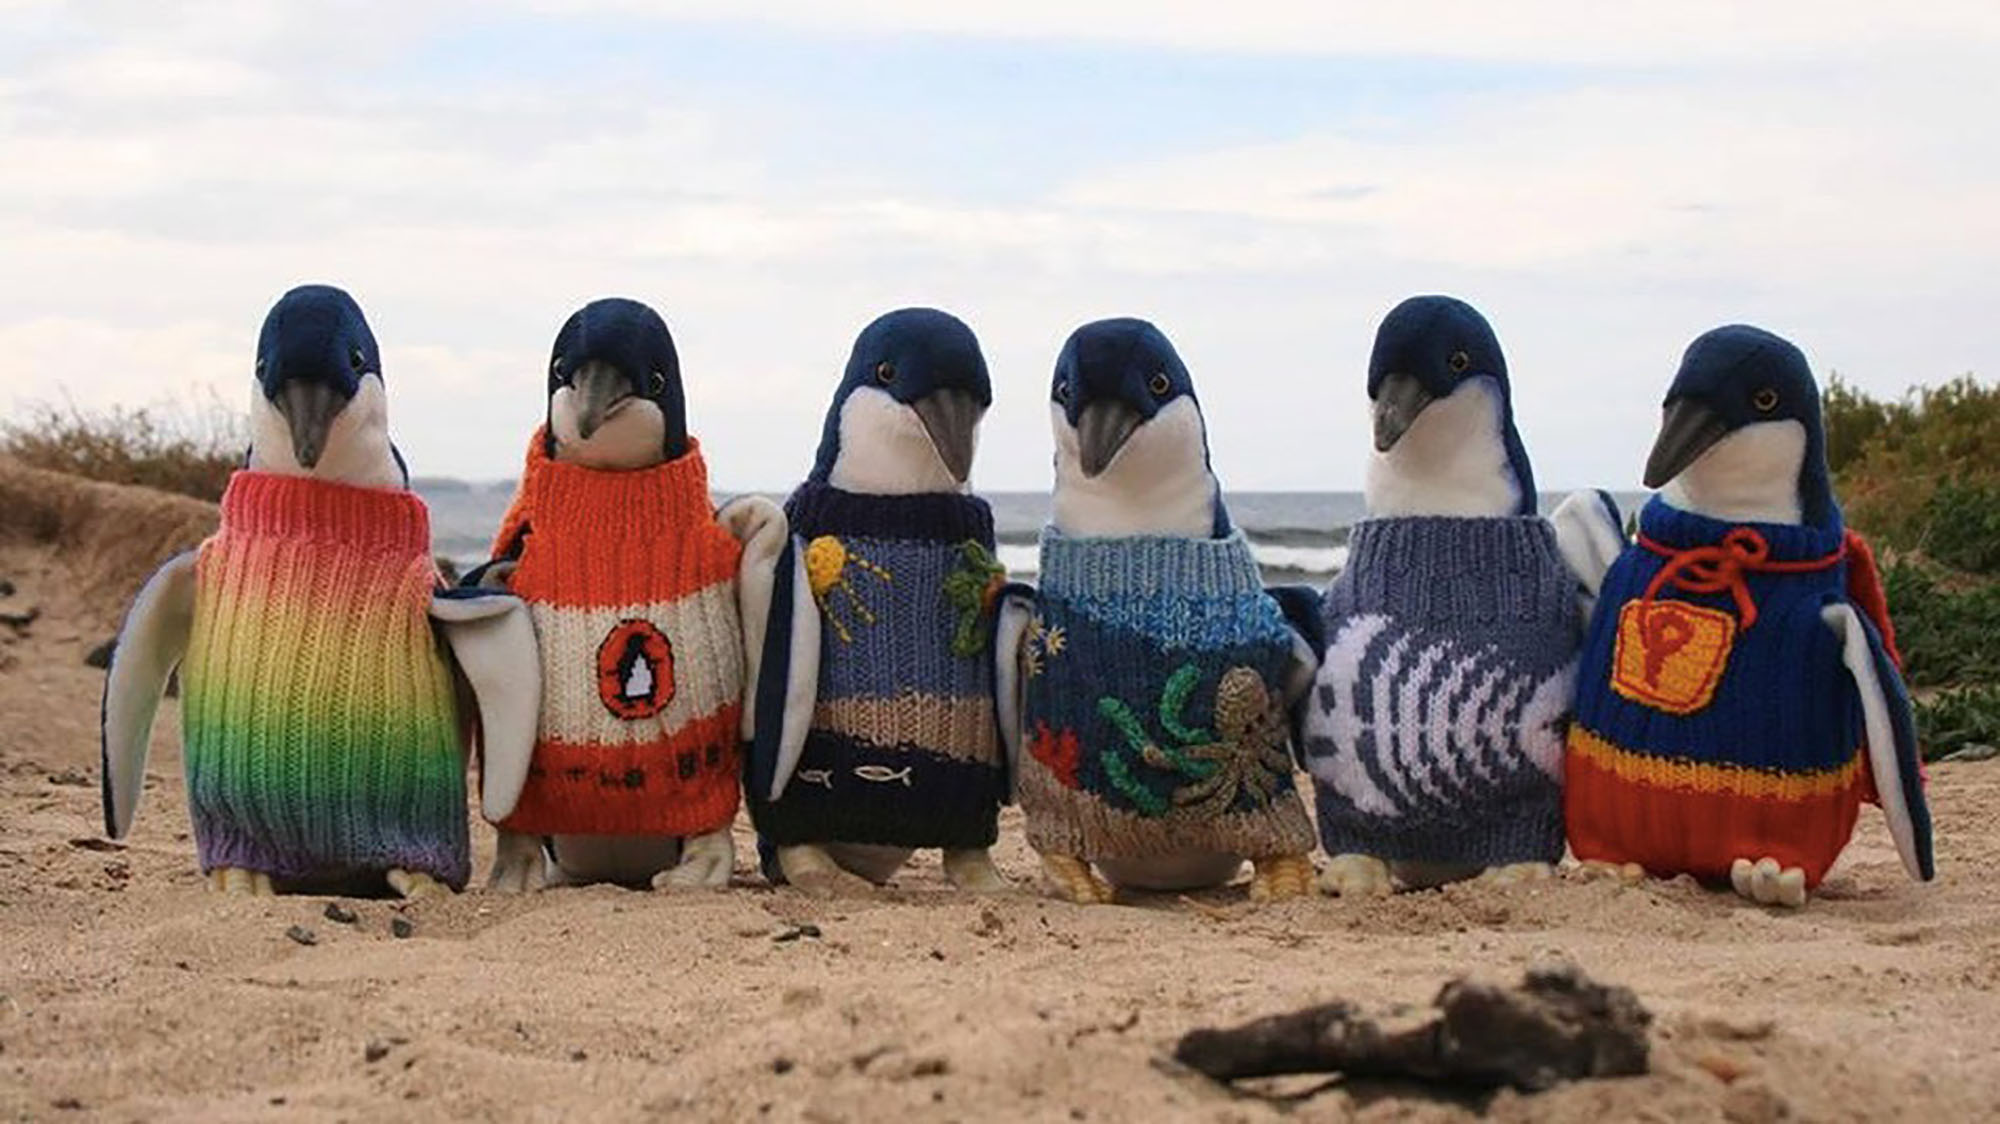 Australia's oldest man knits mini-sweaters for injured penguins